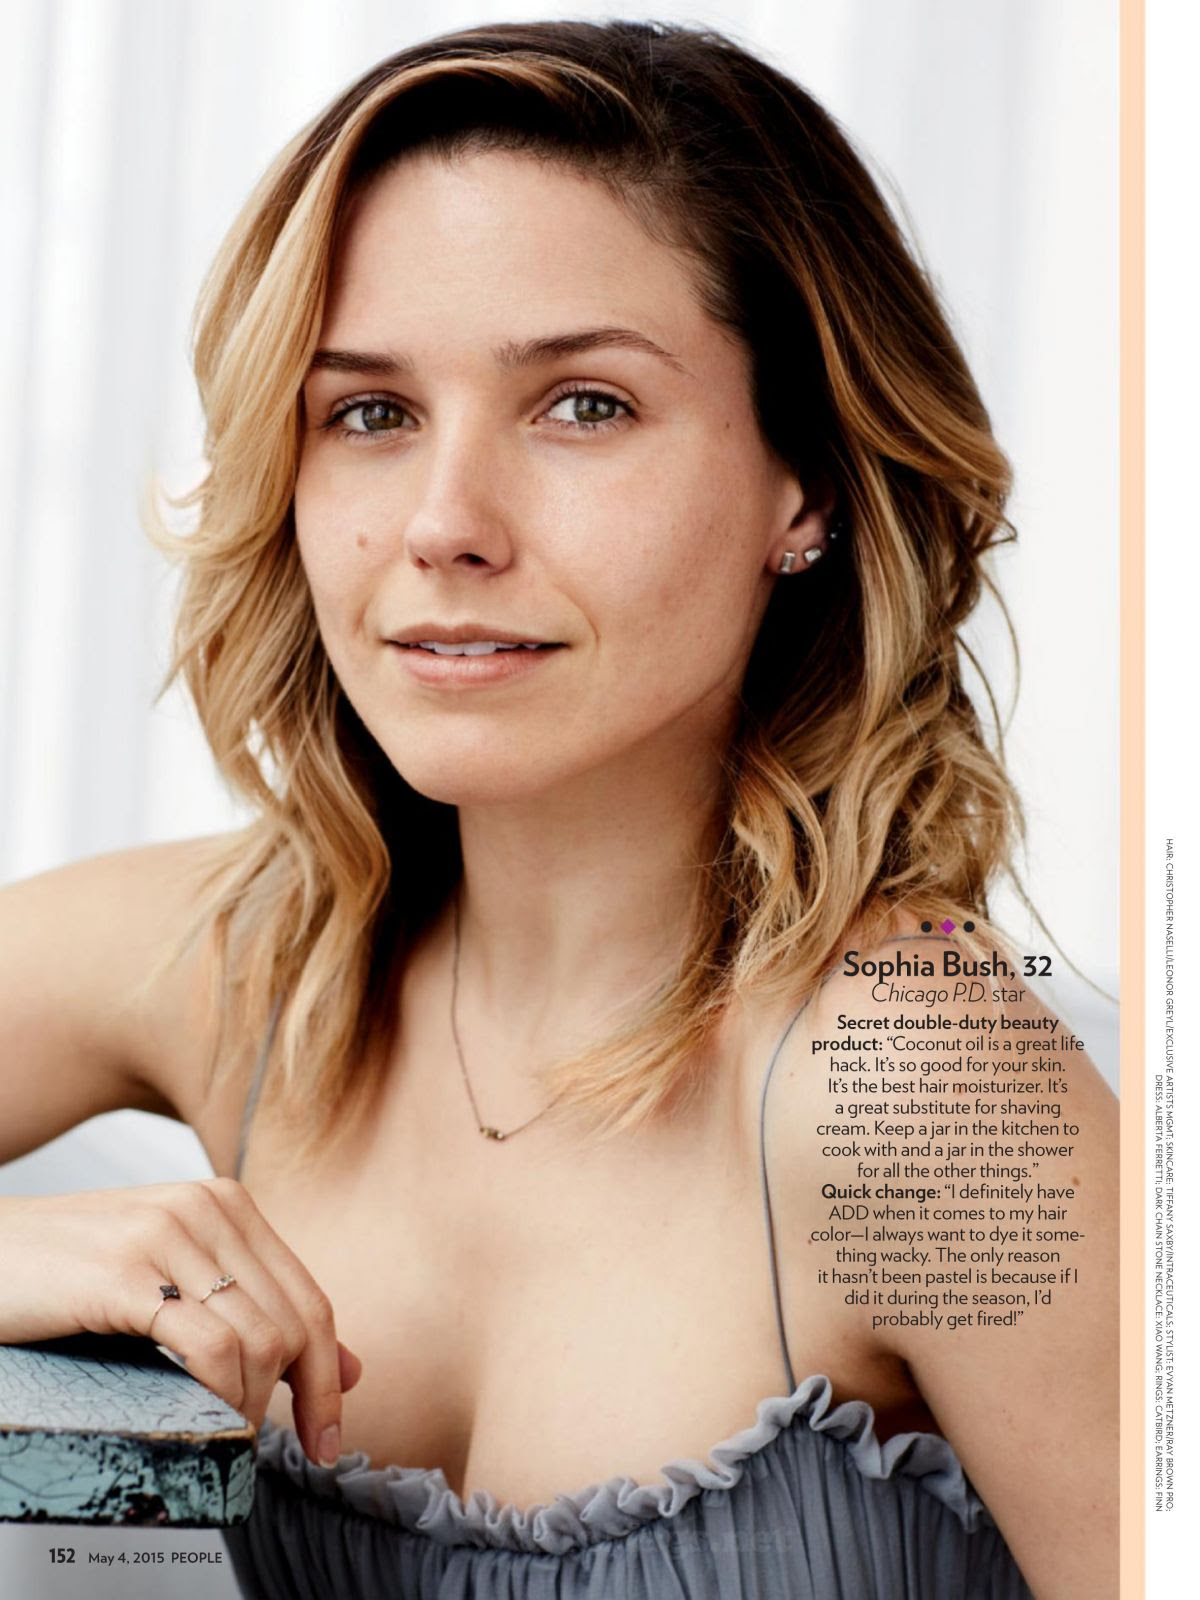 SOPHIA BUSH in People Magazine 2015, Most Beautiful Issue